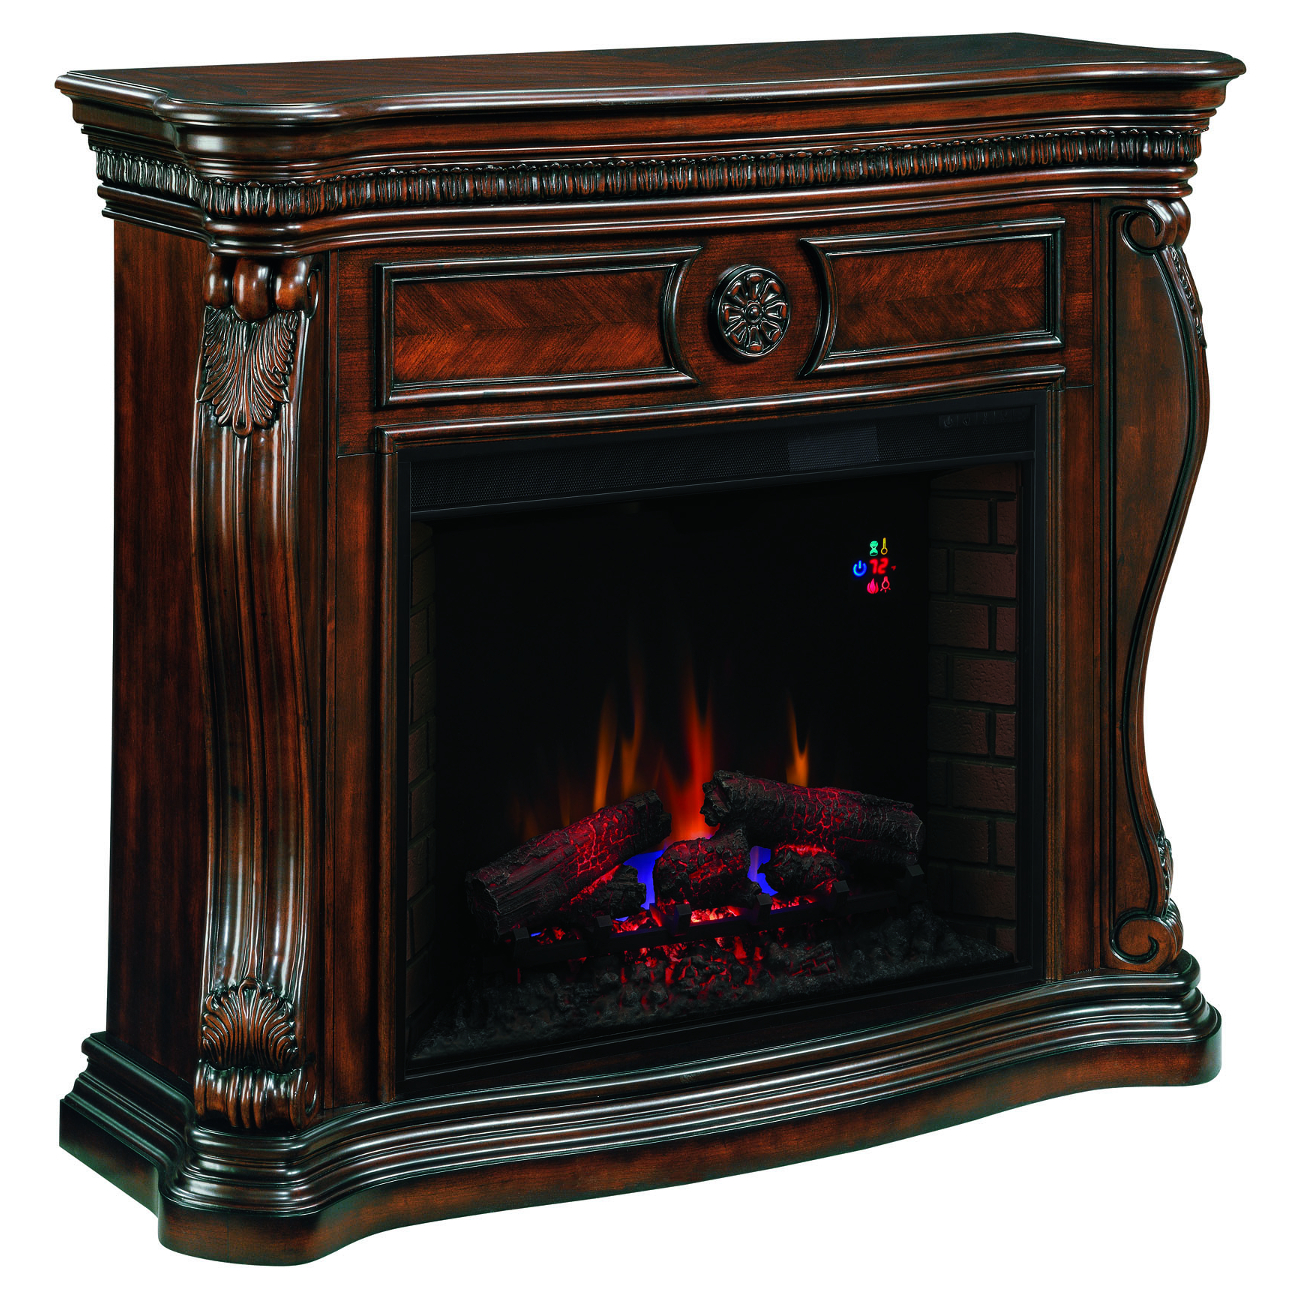 Classic Flame Lexington Wall Mantel Electric Fireplace 33WM881-C232 33II310GRA Infrared Electric Fireplace Insert